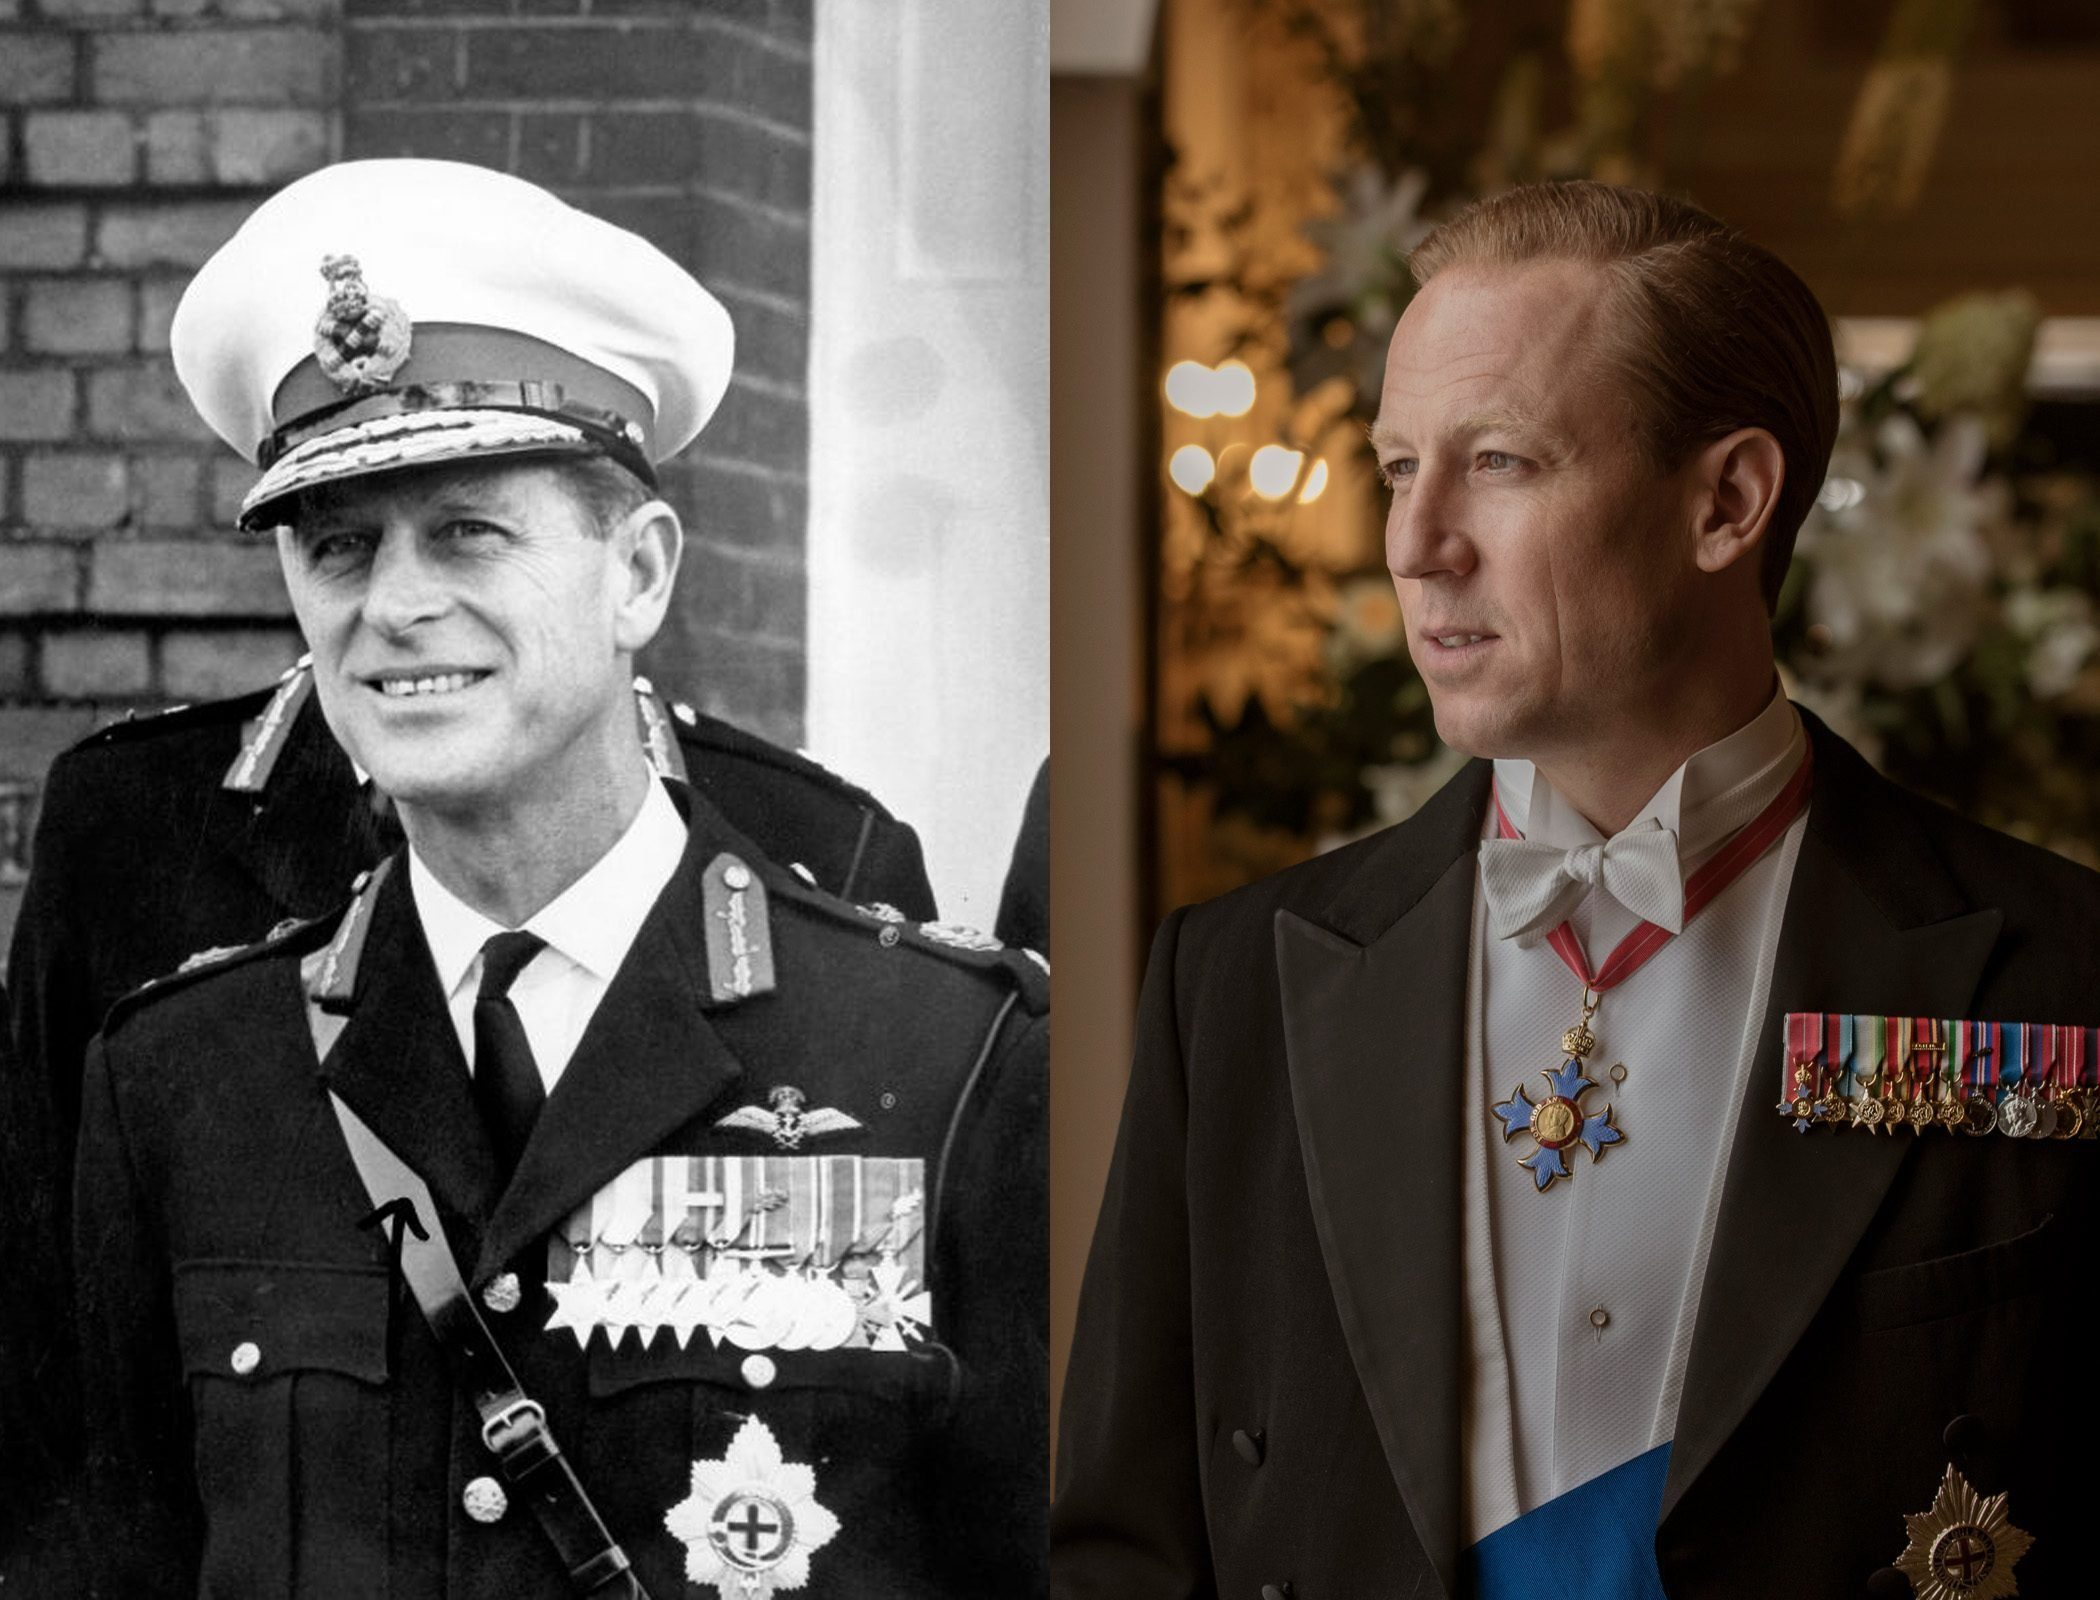 Prince Philip in middle age, as played by Tobias Menzies